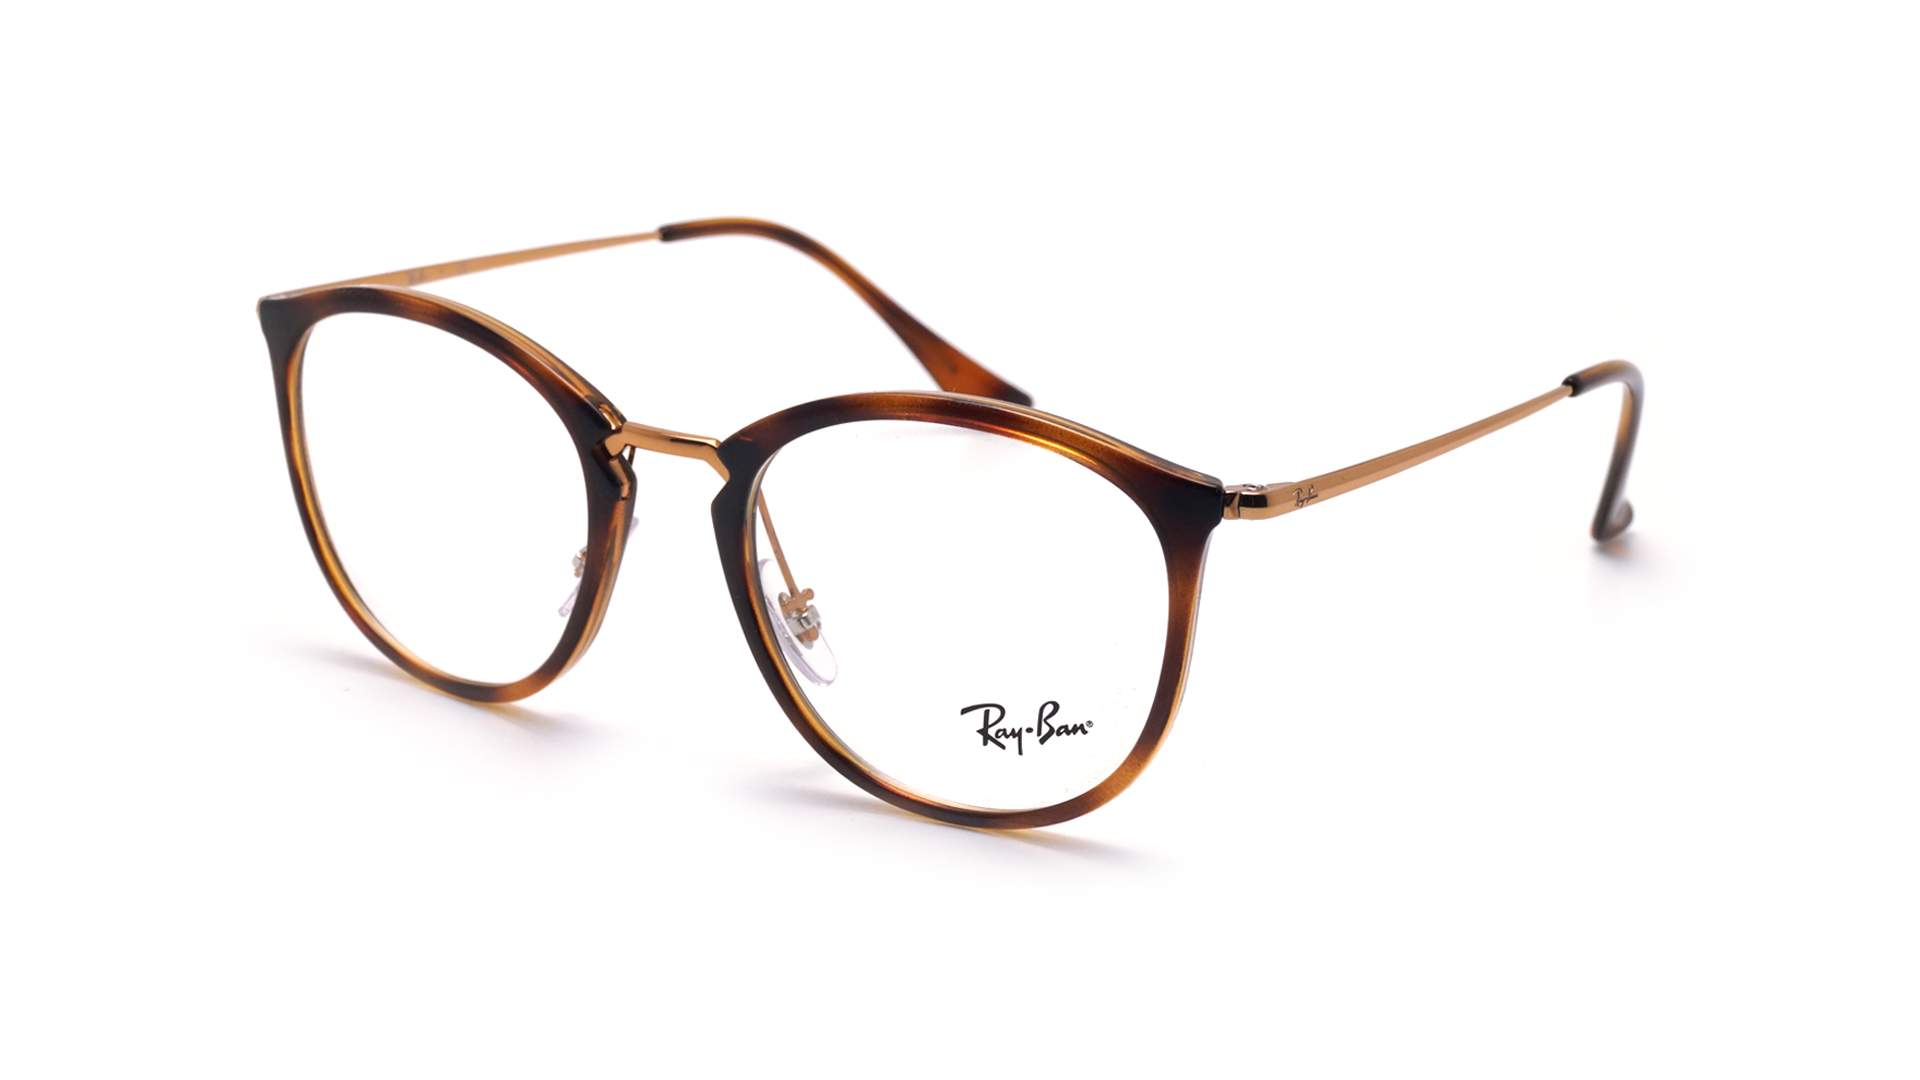 2a3c78a639 Eyeglasses Ray-Ban RX7140 RB7140 5687 51-20 Tortoise Medium